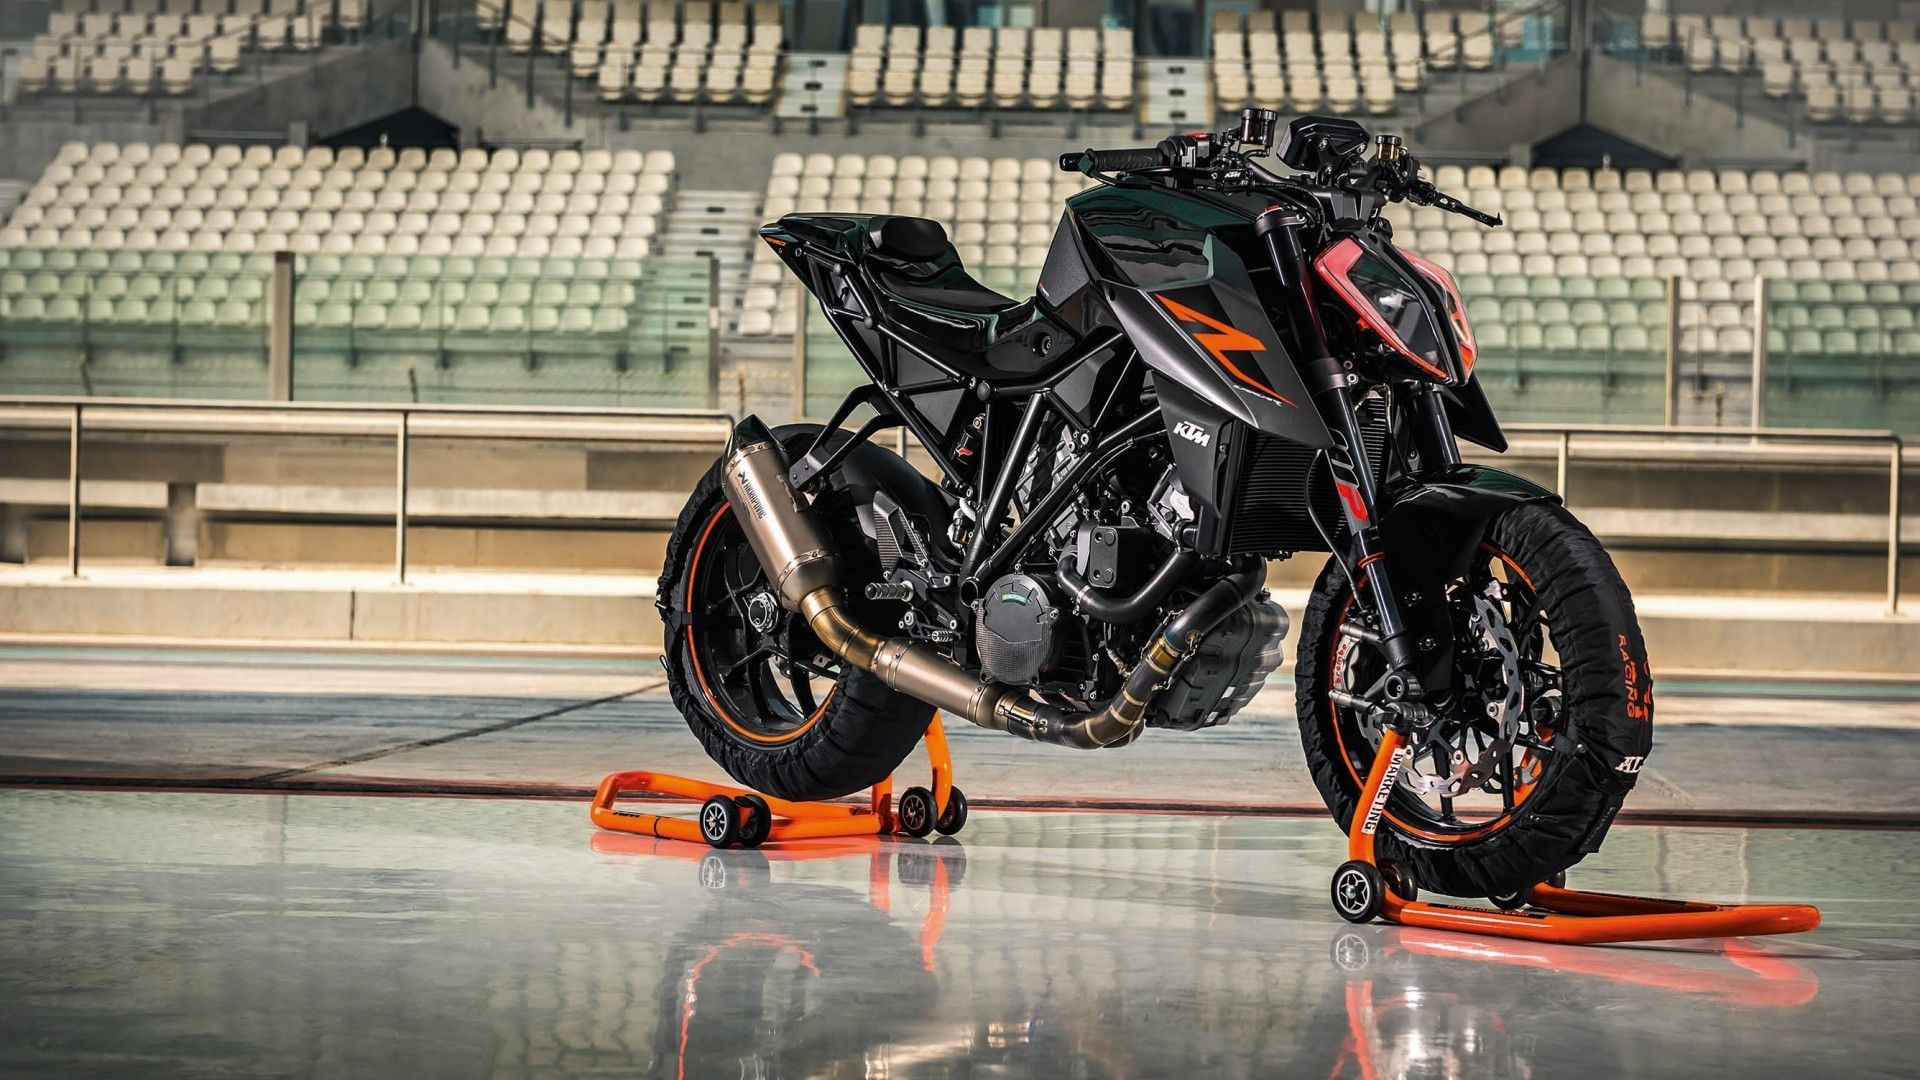 1920x1080 ktm super duke 1290 hd wallpapers #348361